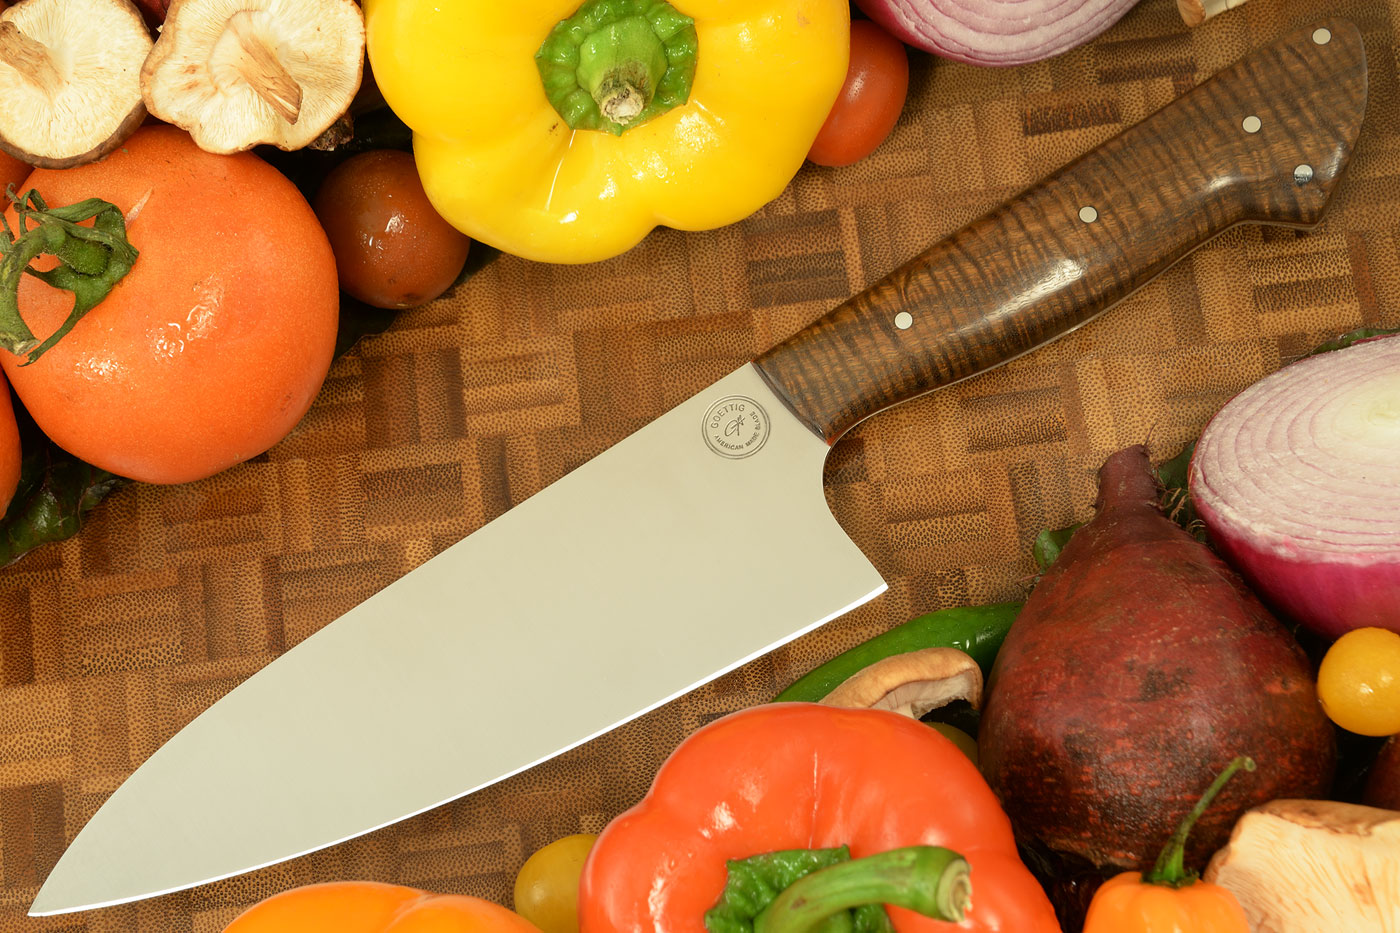 Chef's Knife (6-1/2 in.) with Ringed Gidgee